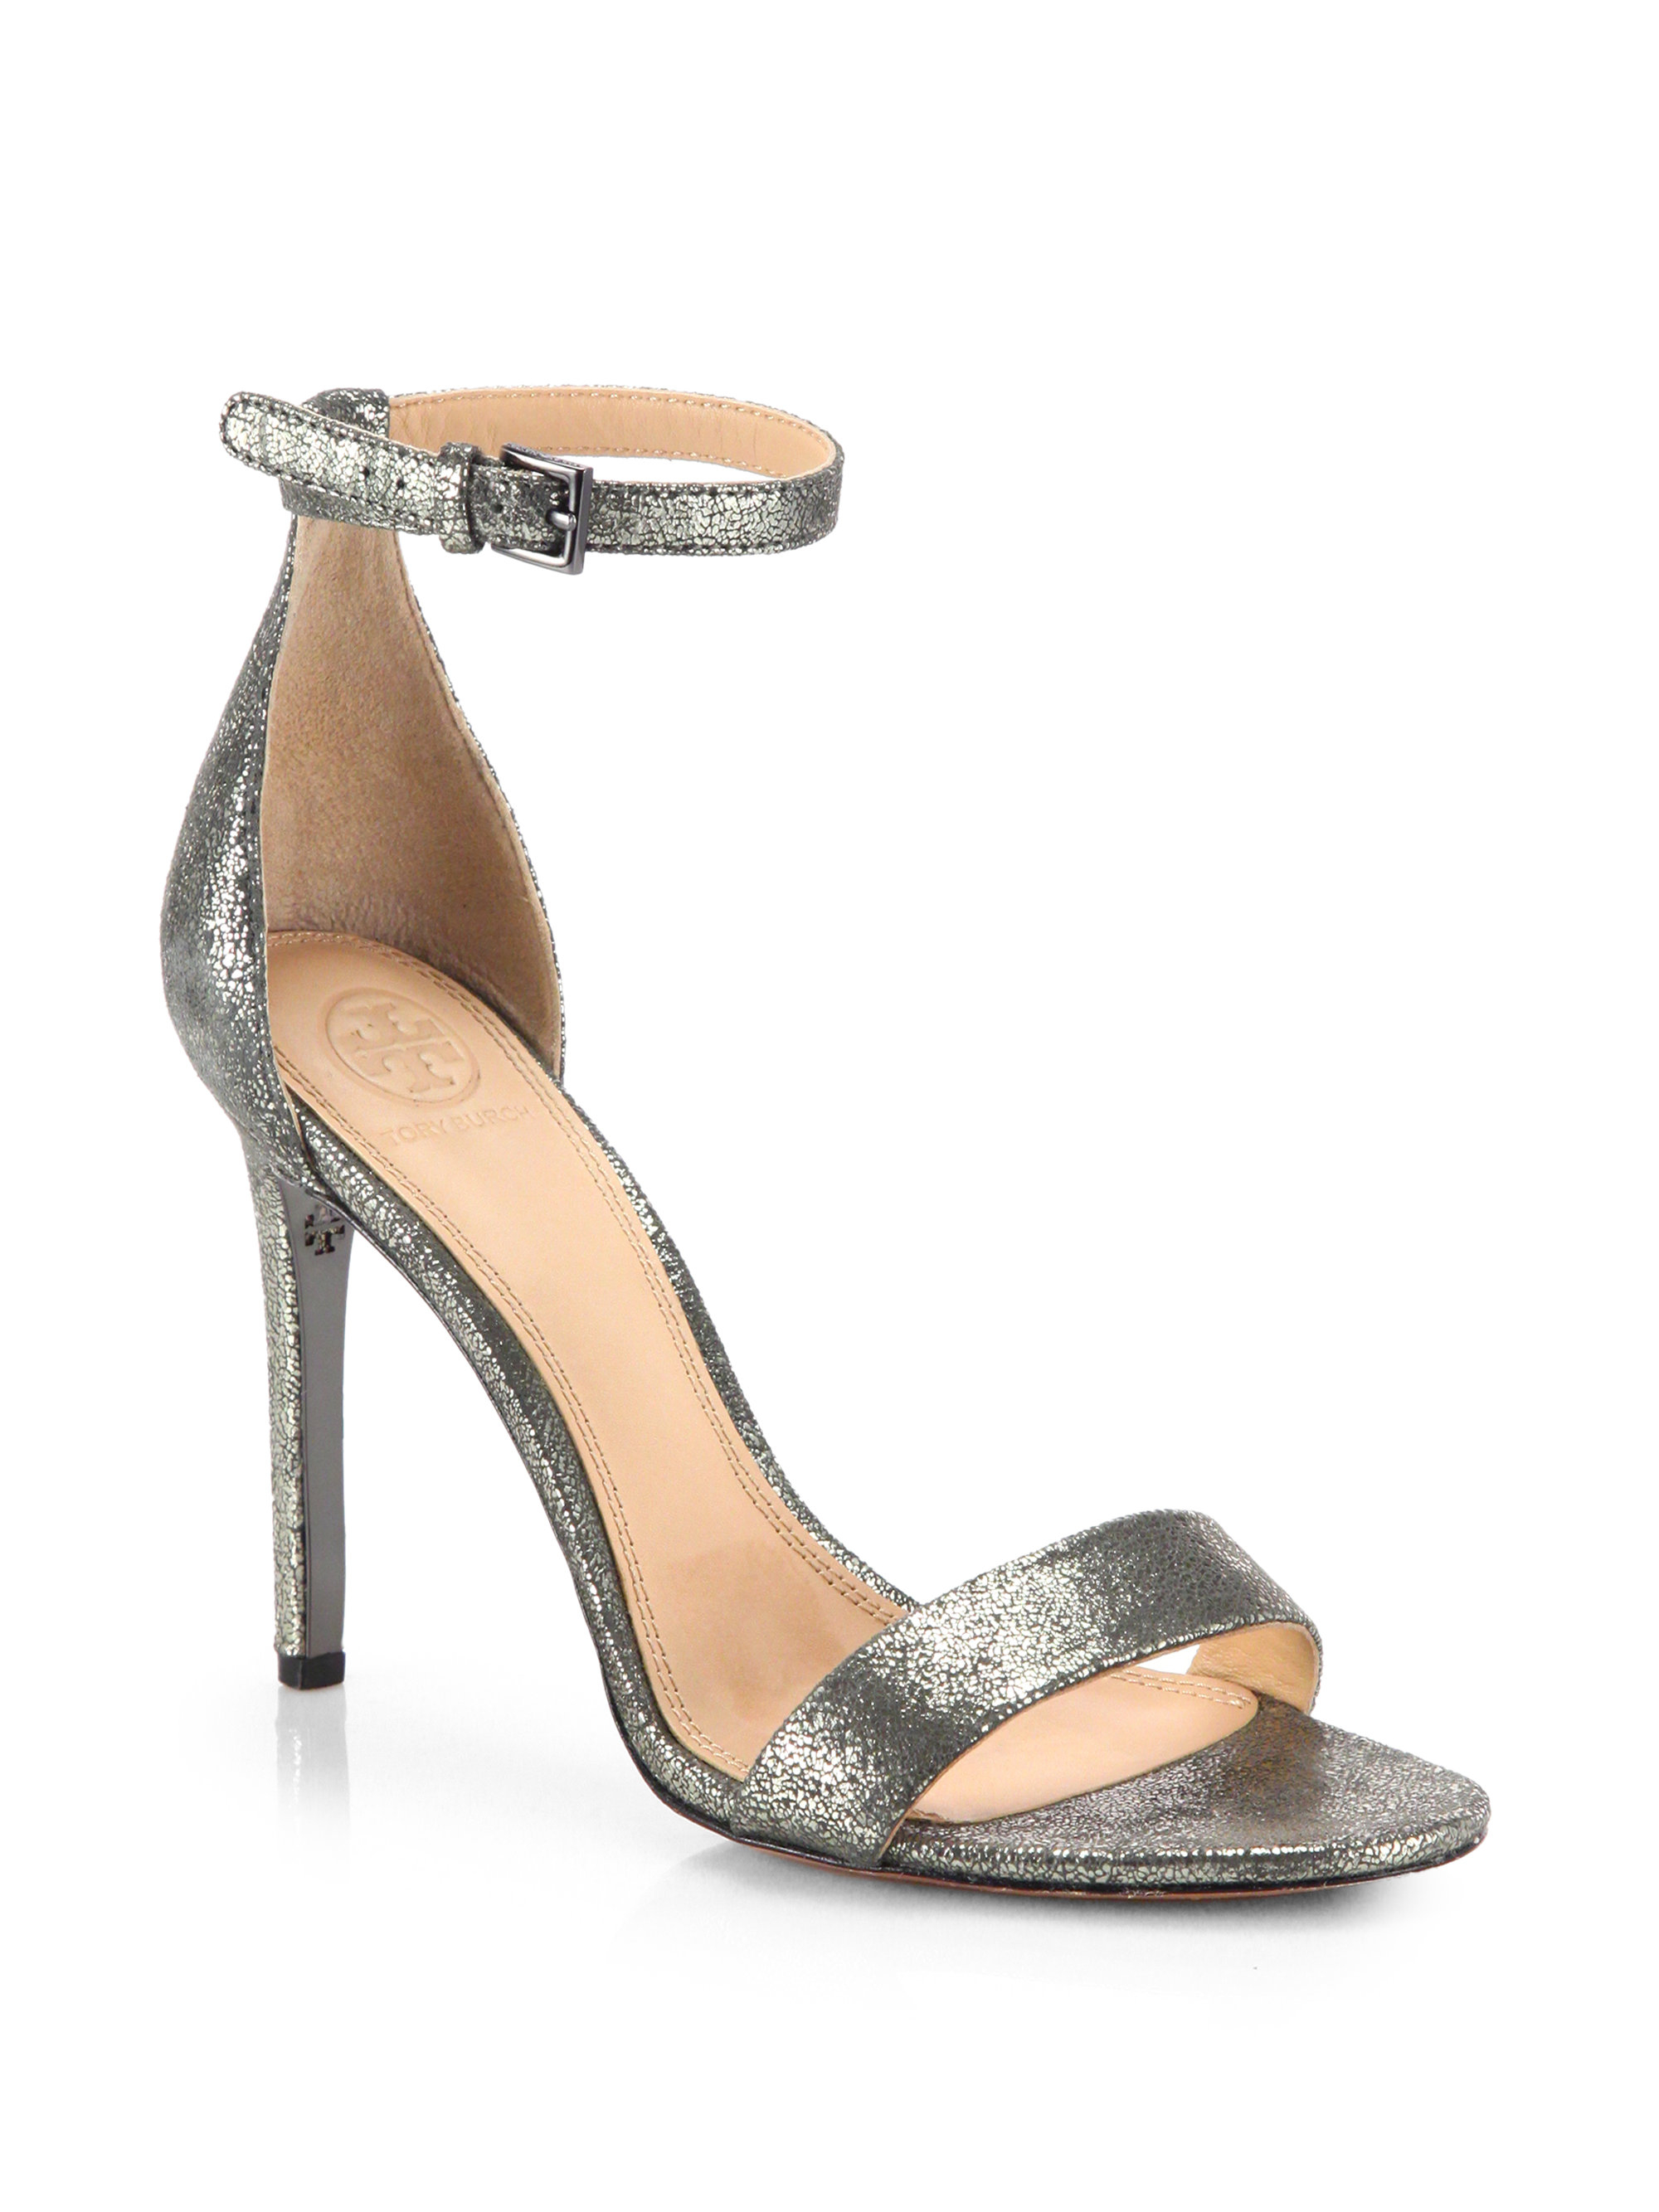 6738ab9015ac0 Lyst - Tory Burch Keri Crackled Metallic Leather Sandals in Metallic